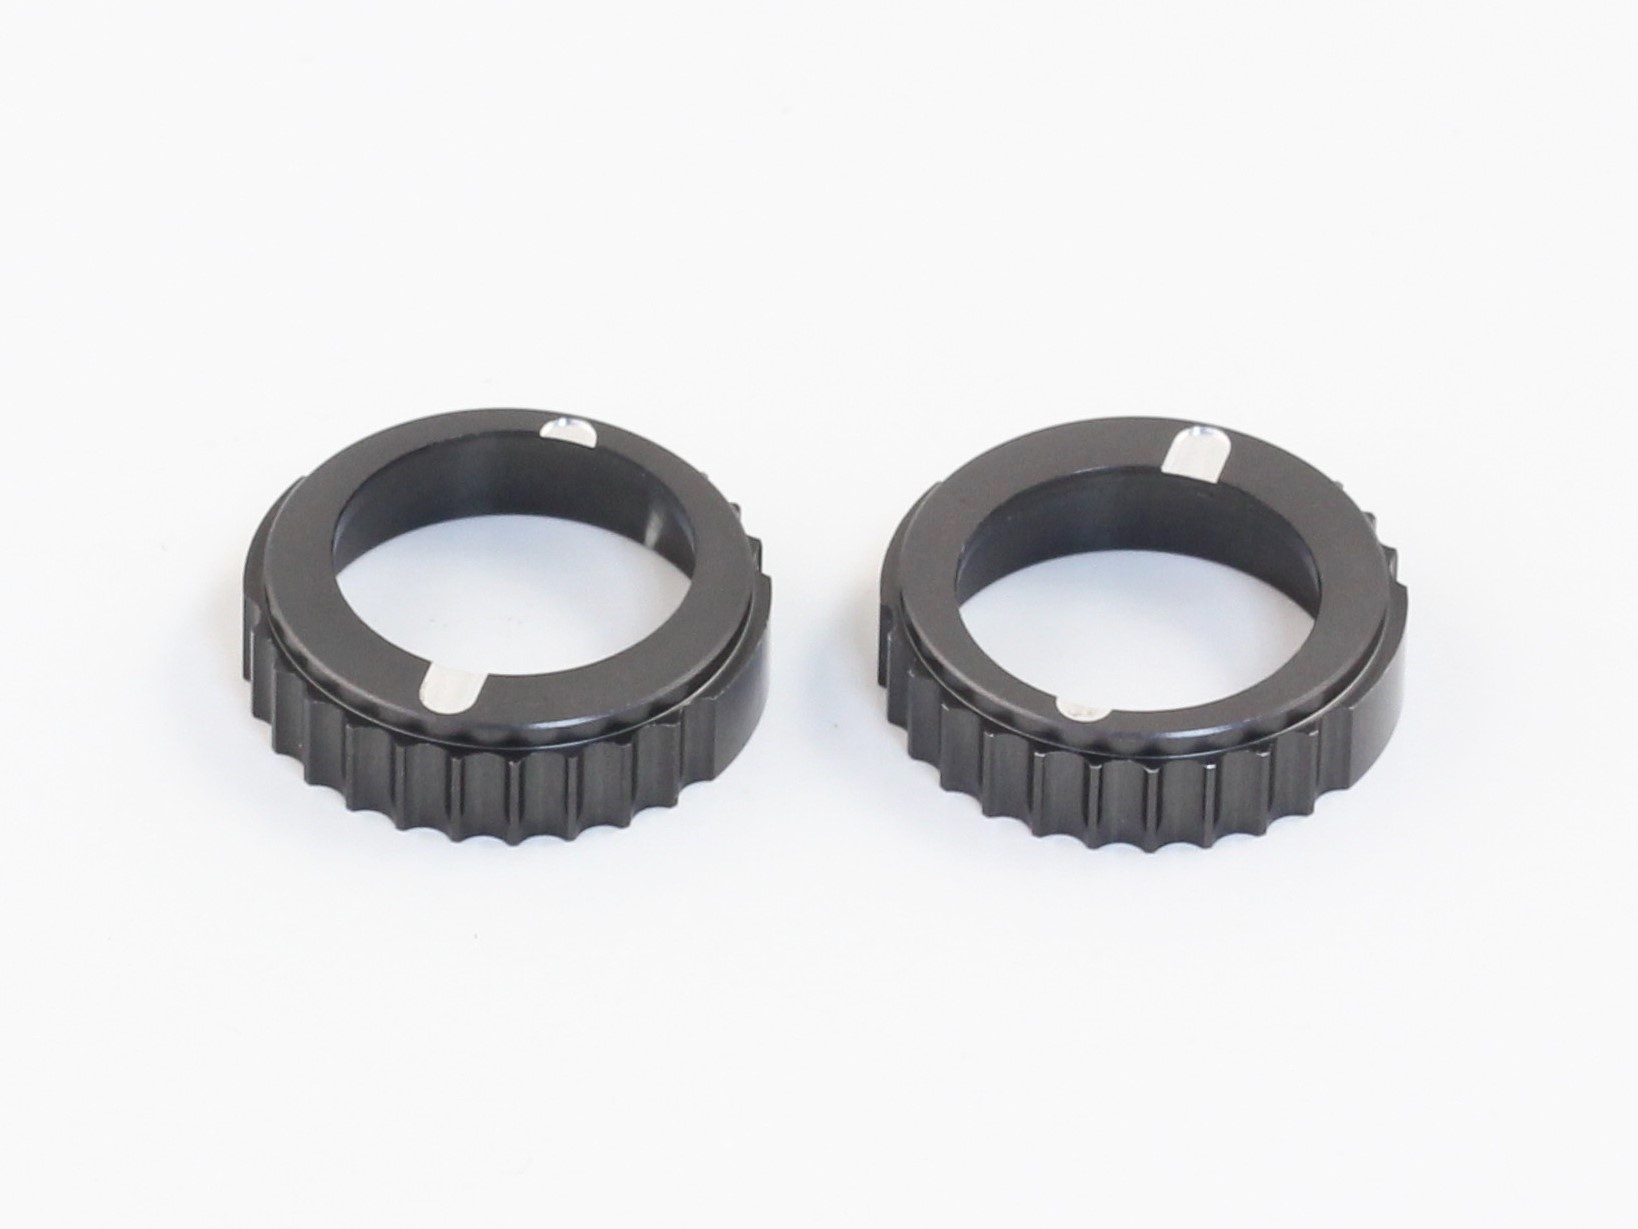 Destiny RX-10s Aluminium Adjustment Ball Bearing Hub 2pcs